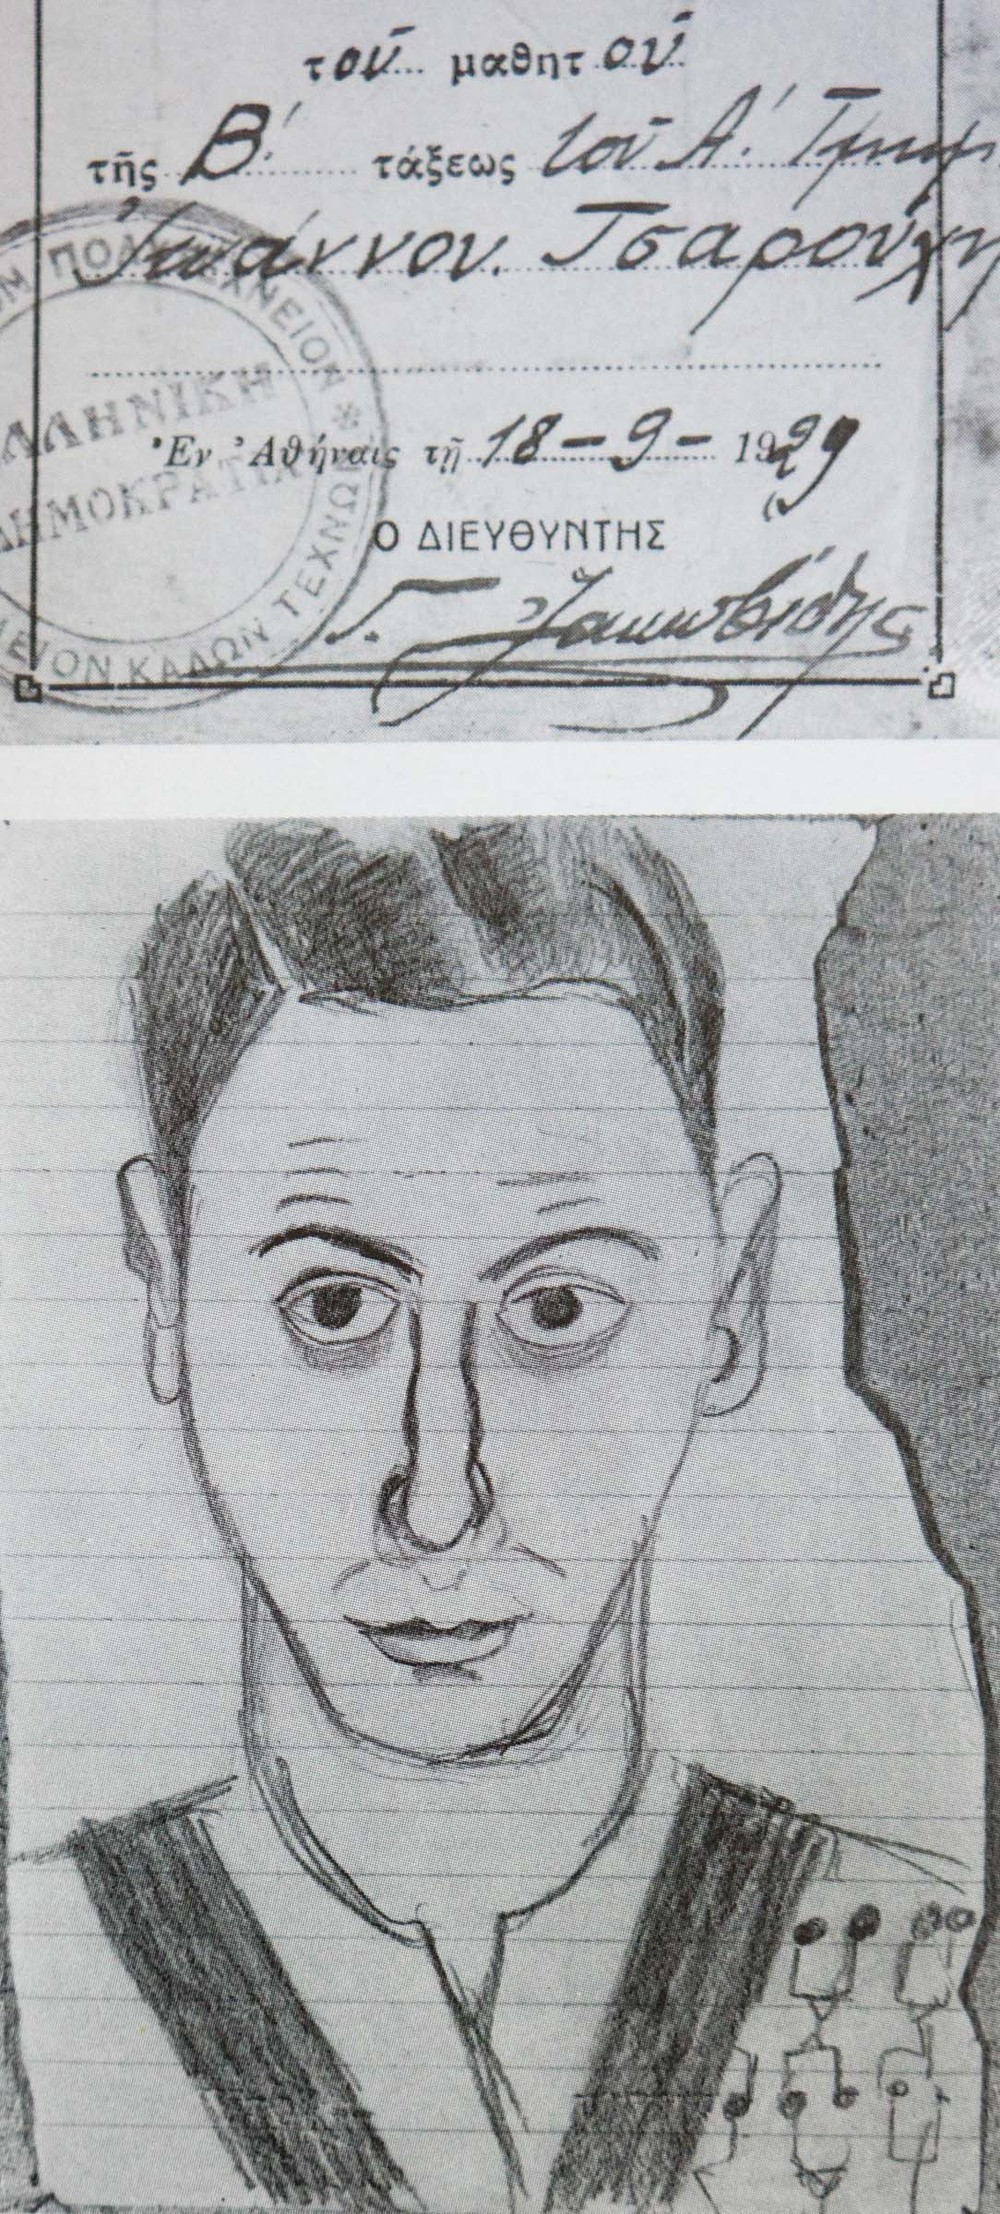 tsarouchis self portrait as a student